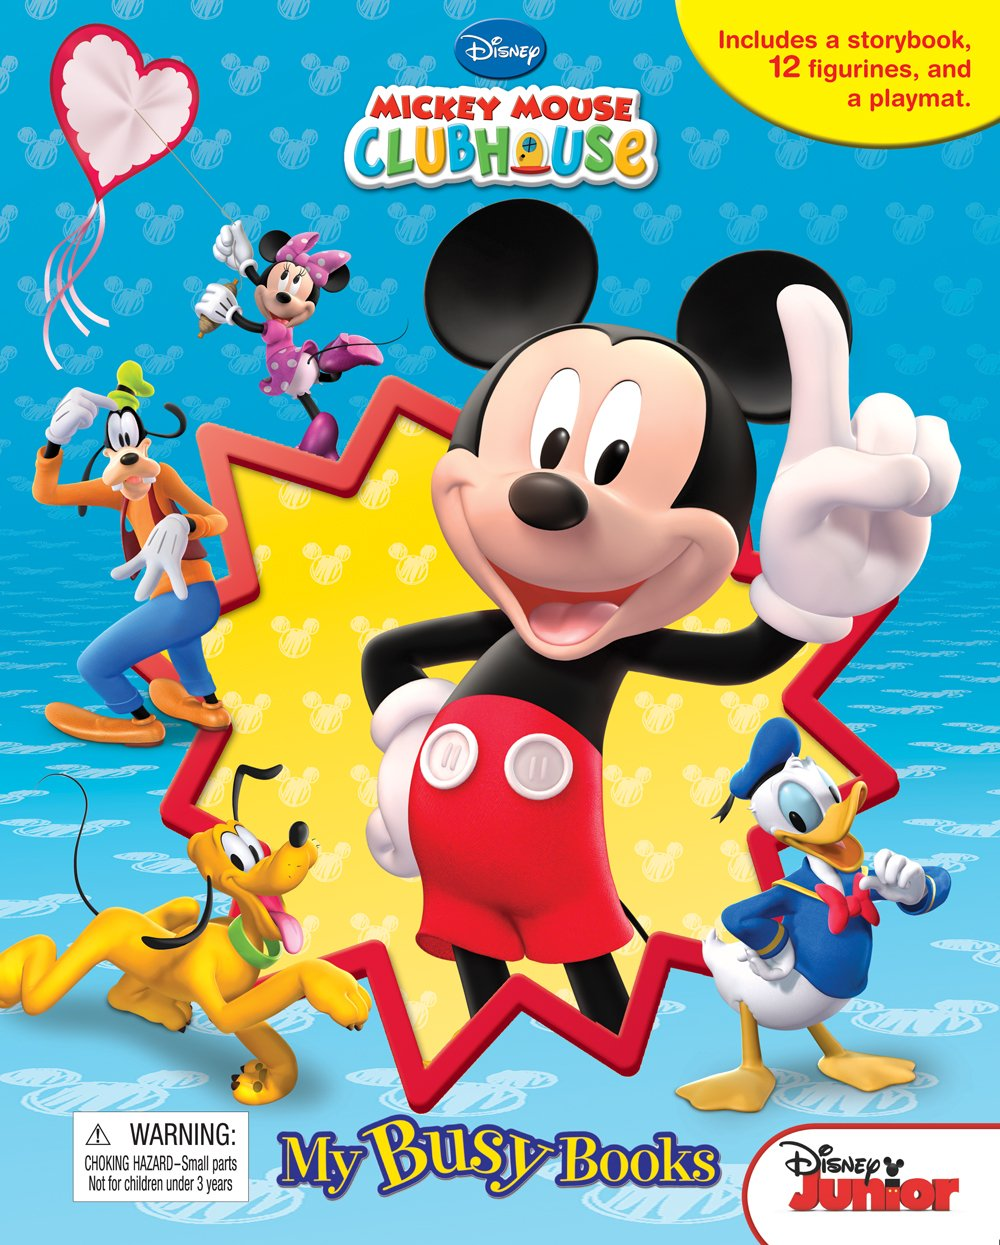 My Busy Books : Disney Mickey Mouse Club House (Disney Junior)